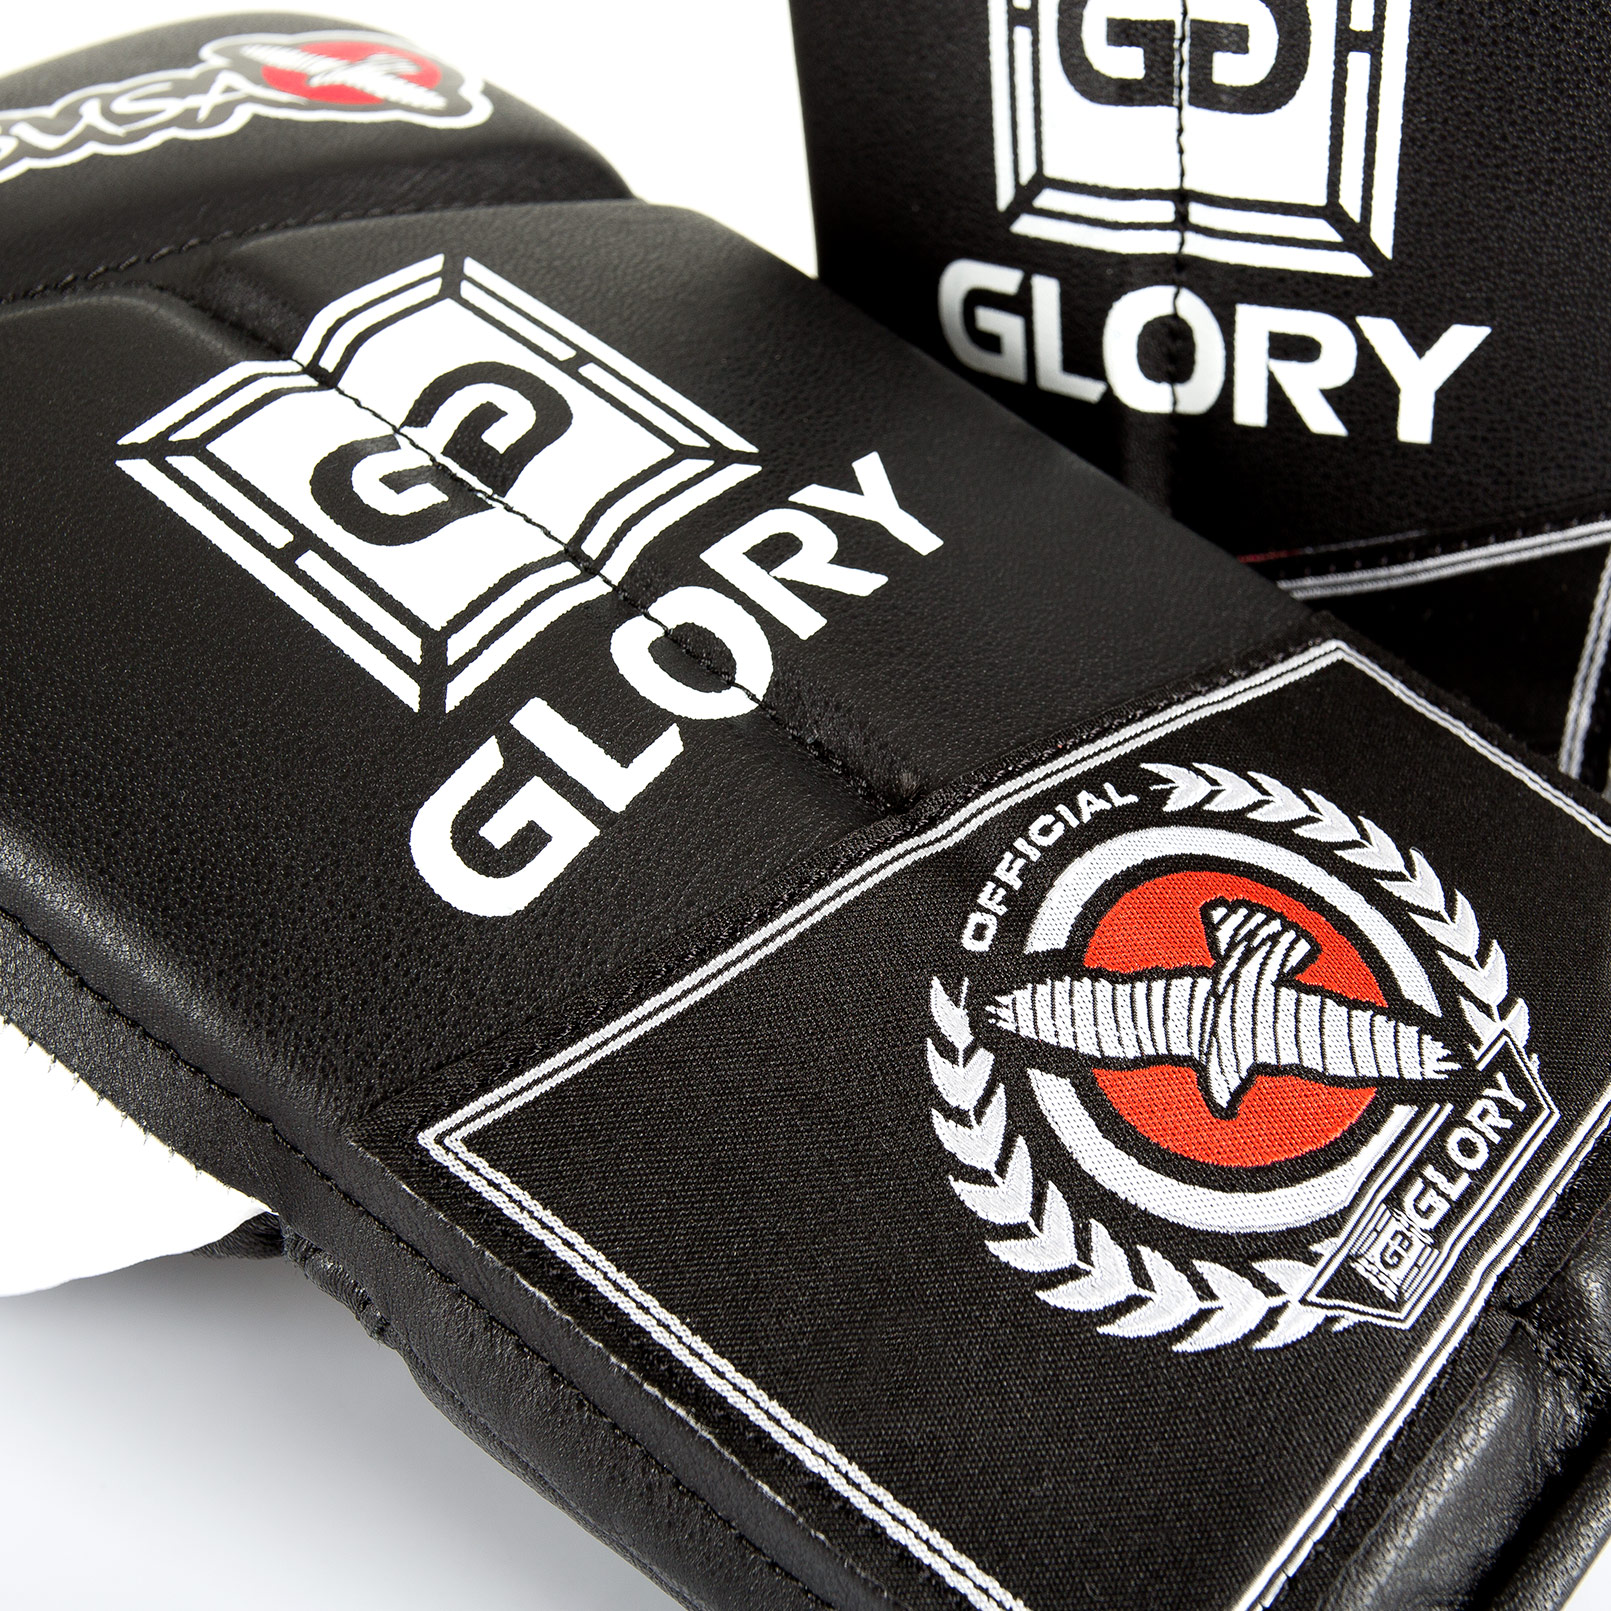 Glory Gloves - Patch